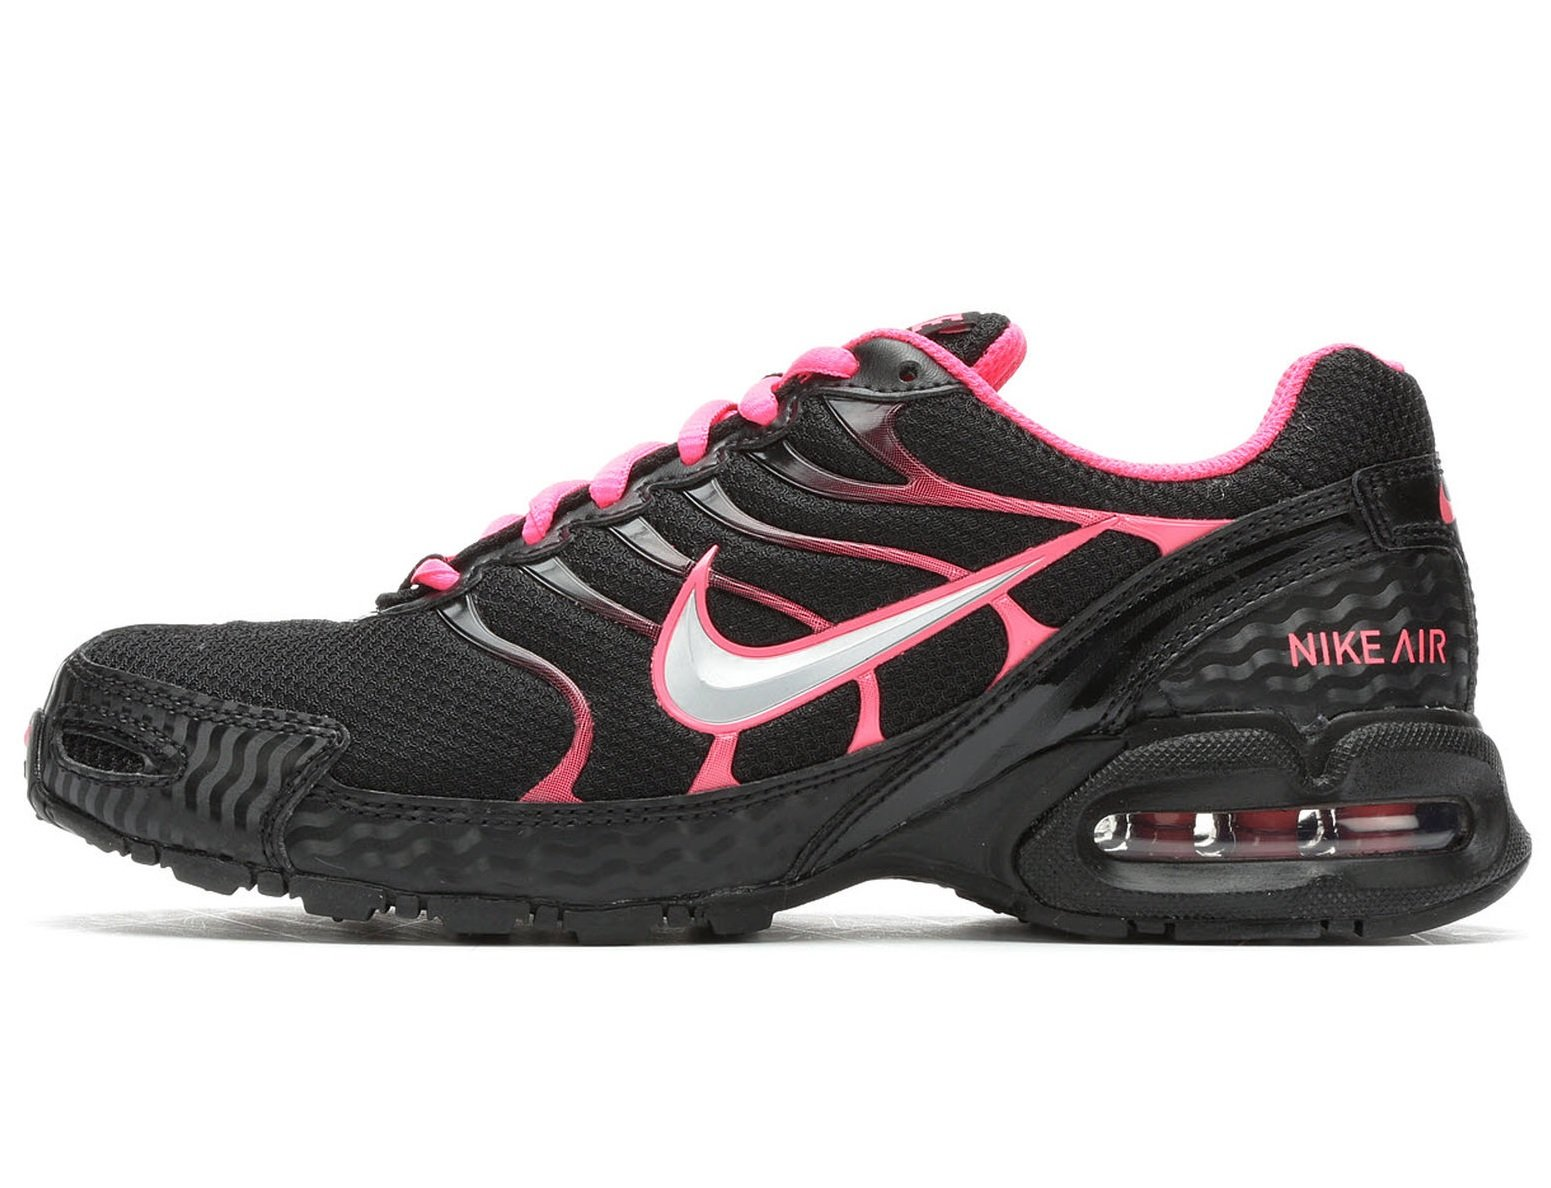 Nike Women's Air Max Torch 4 Running Shoe BlackMetallic Rose GoldAtmosphere Grey Size 9 M US